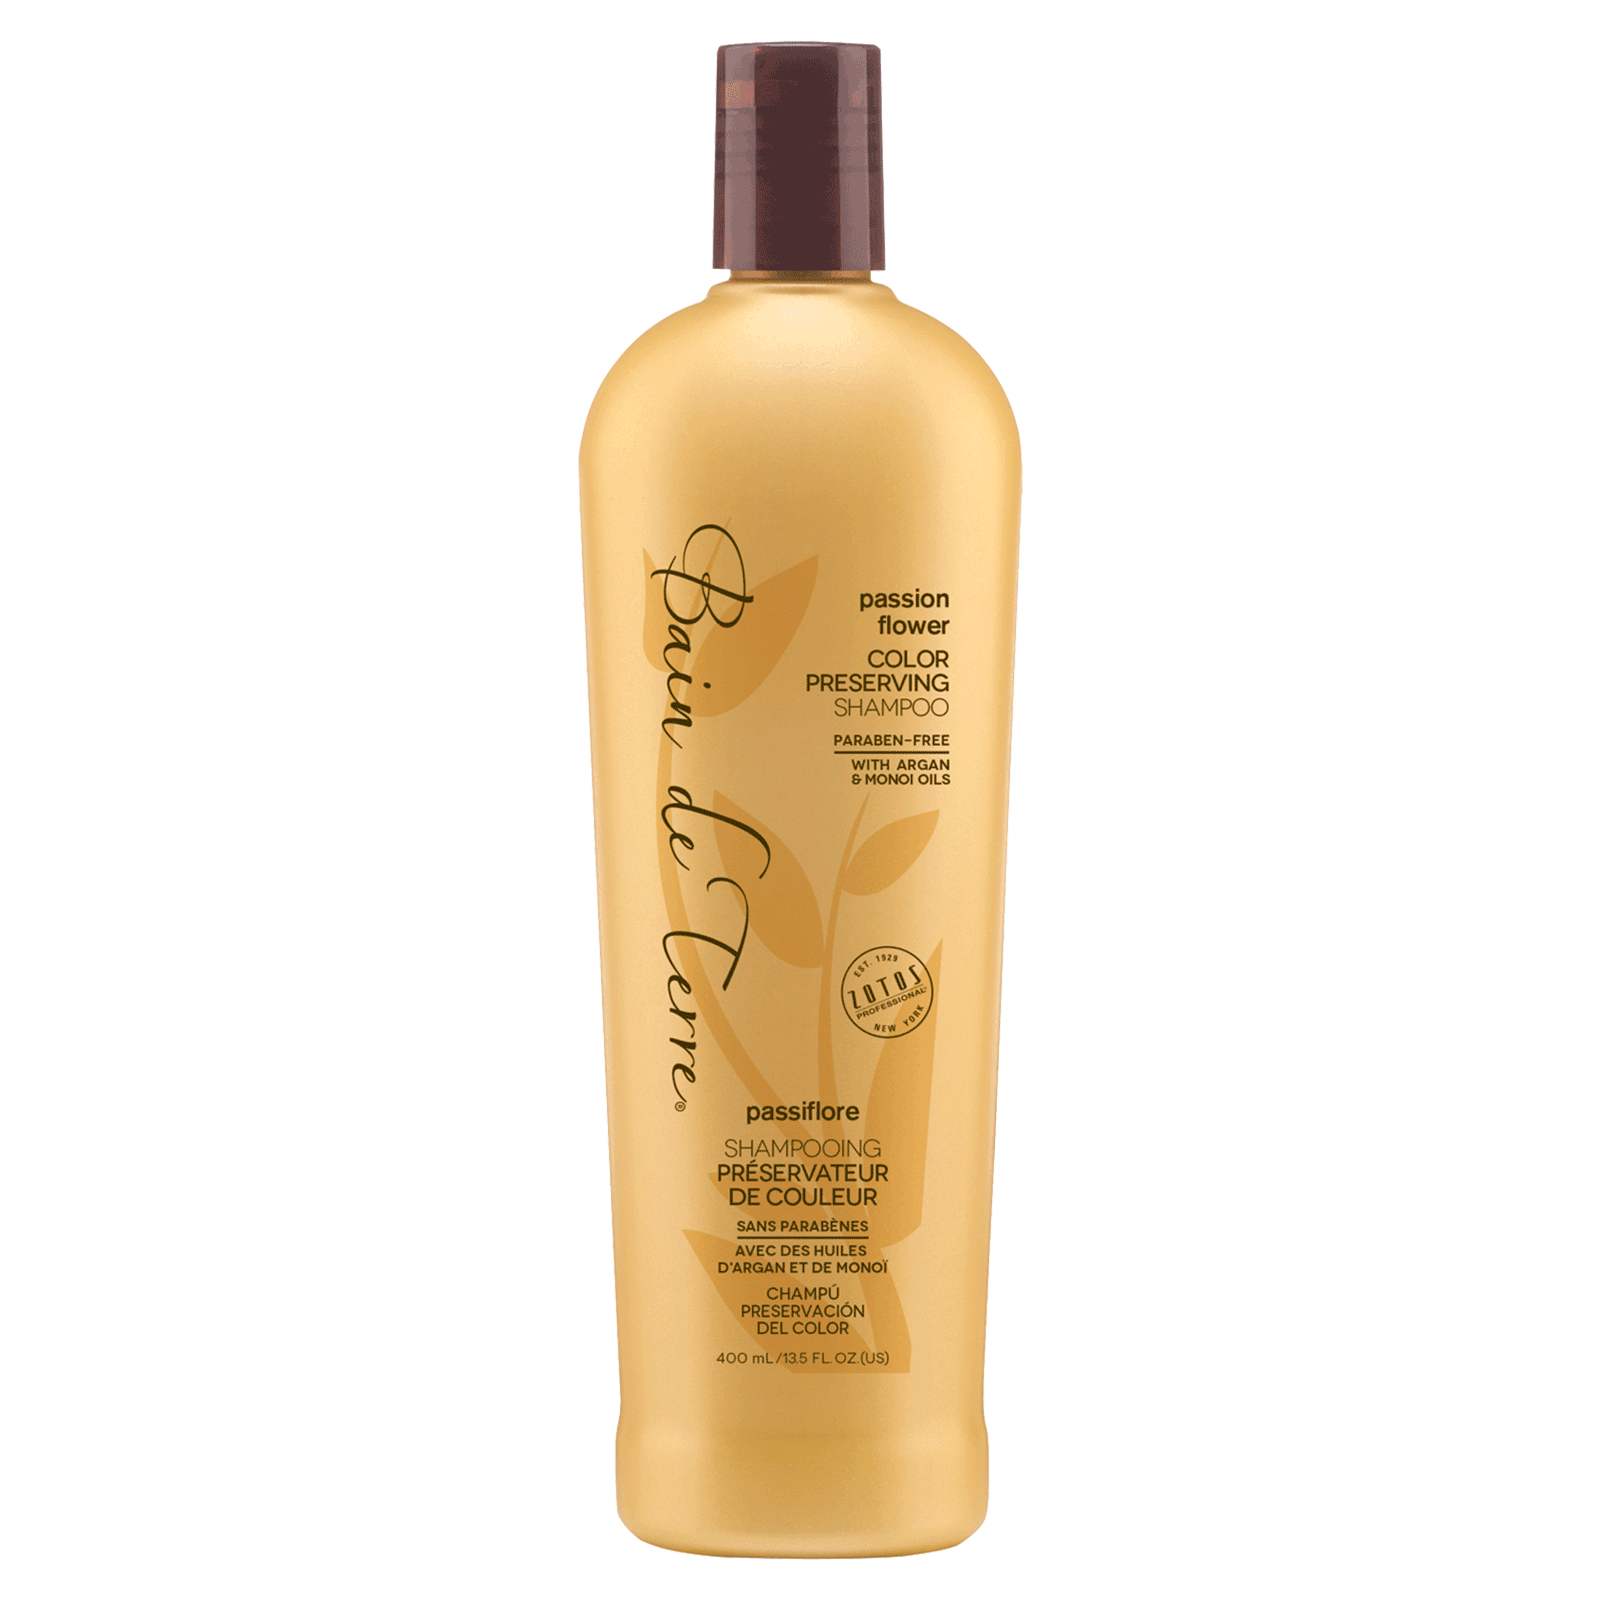 Passion Flower Shampoo